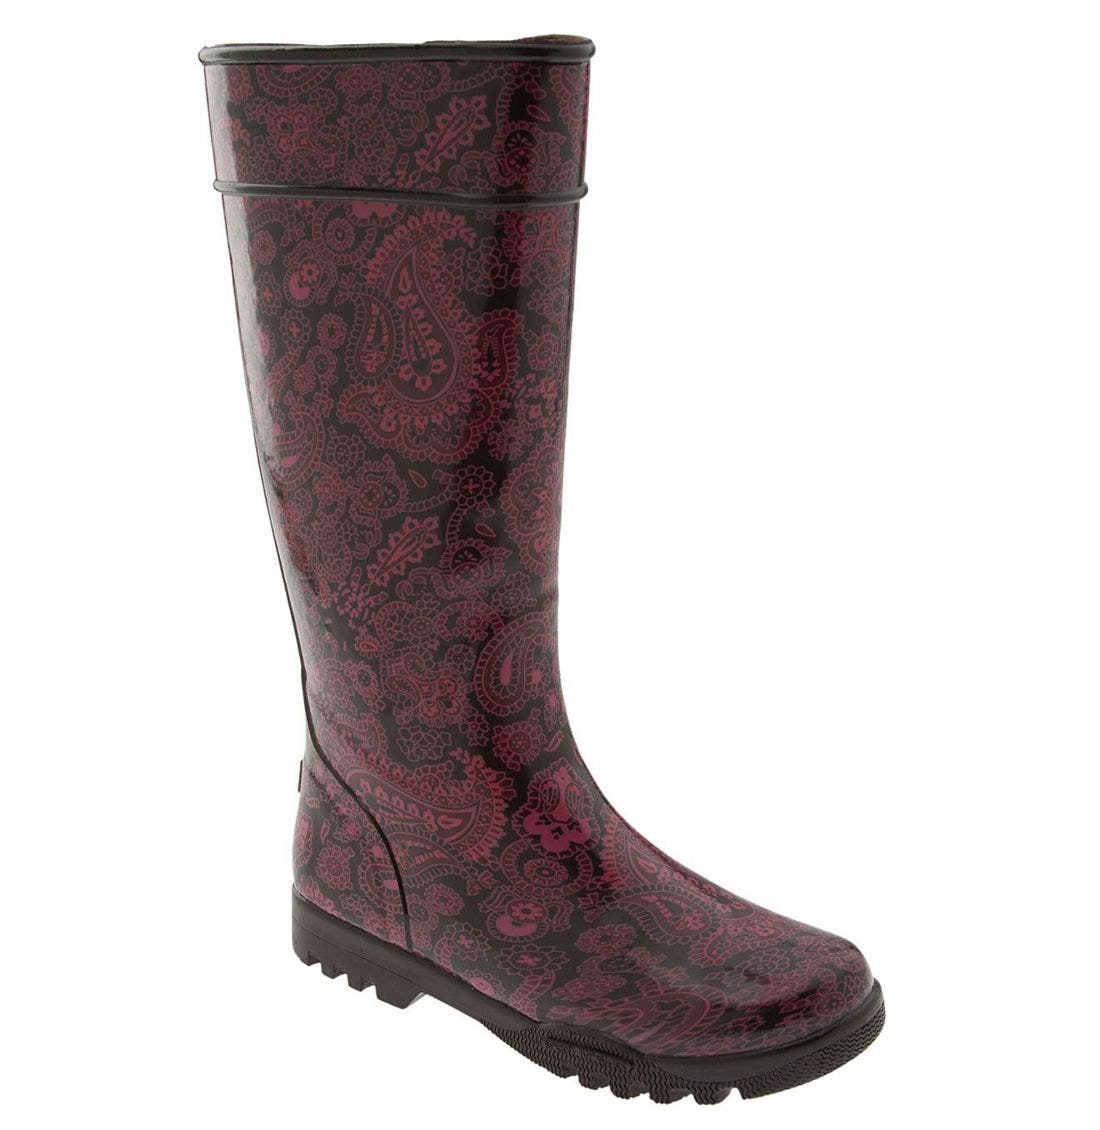 Main Image - Sperry Top-Sider® 'Pelican' Tall Rain Boot (Women)